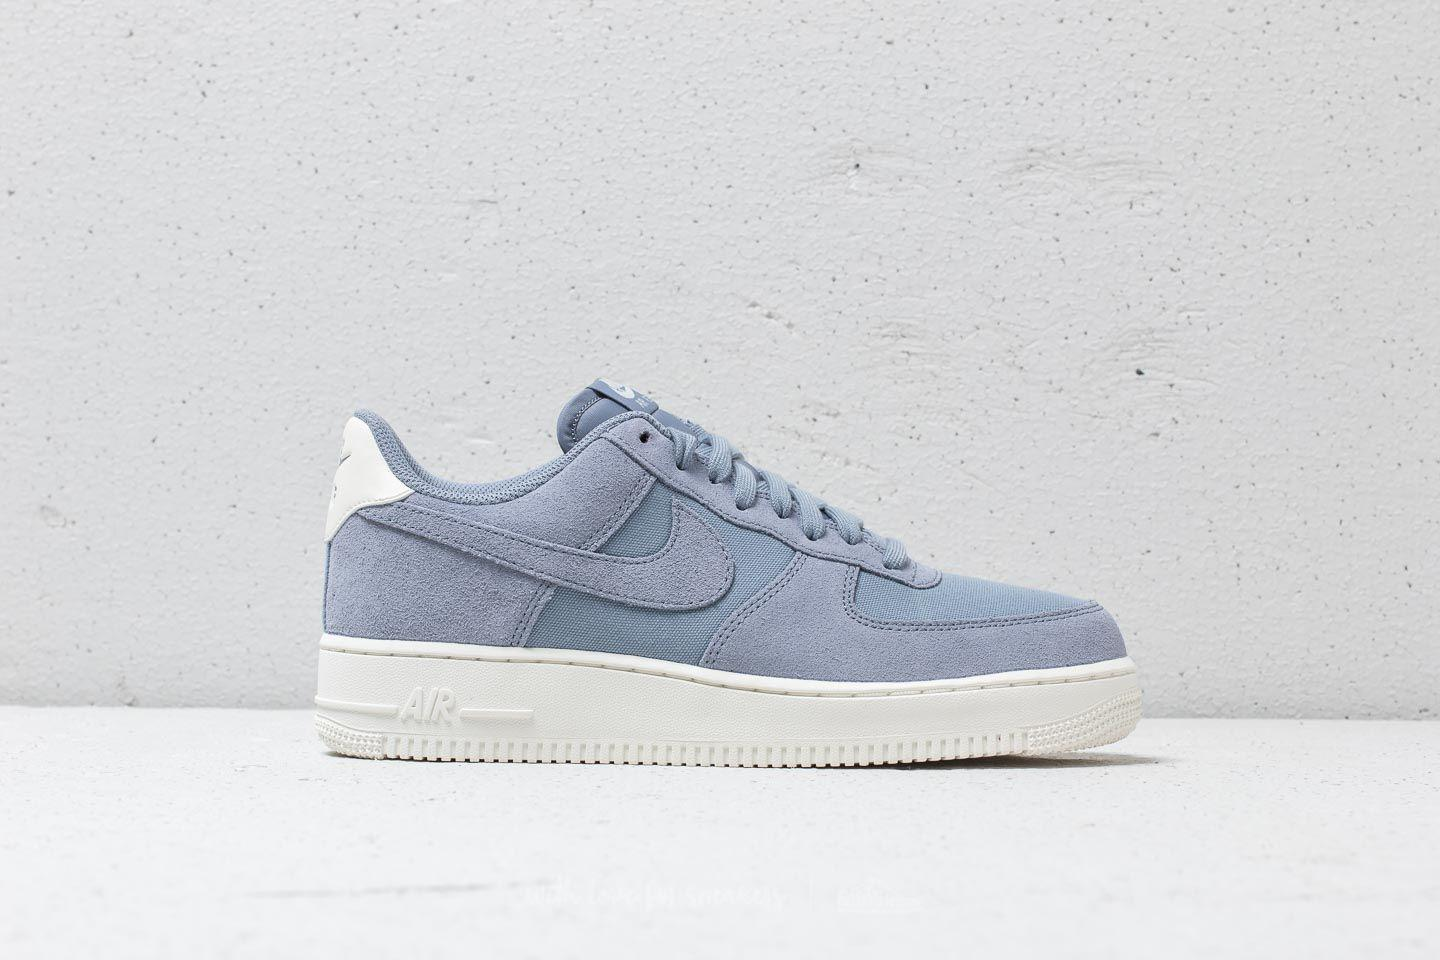 quality design a2d03 6d166 Nike Air Force 1 '07 Suede Ashen Slate/ Ashen Slate-sail in Gray for ...